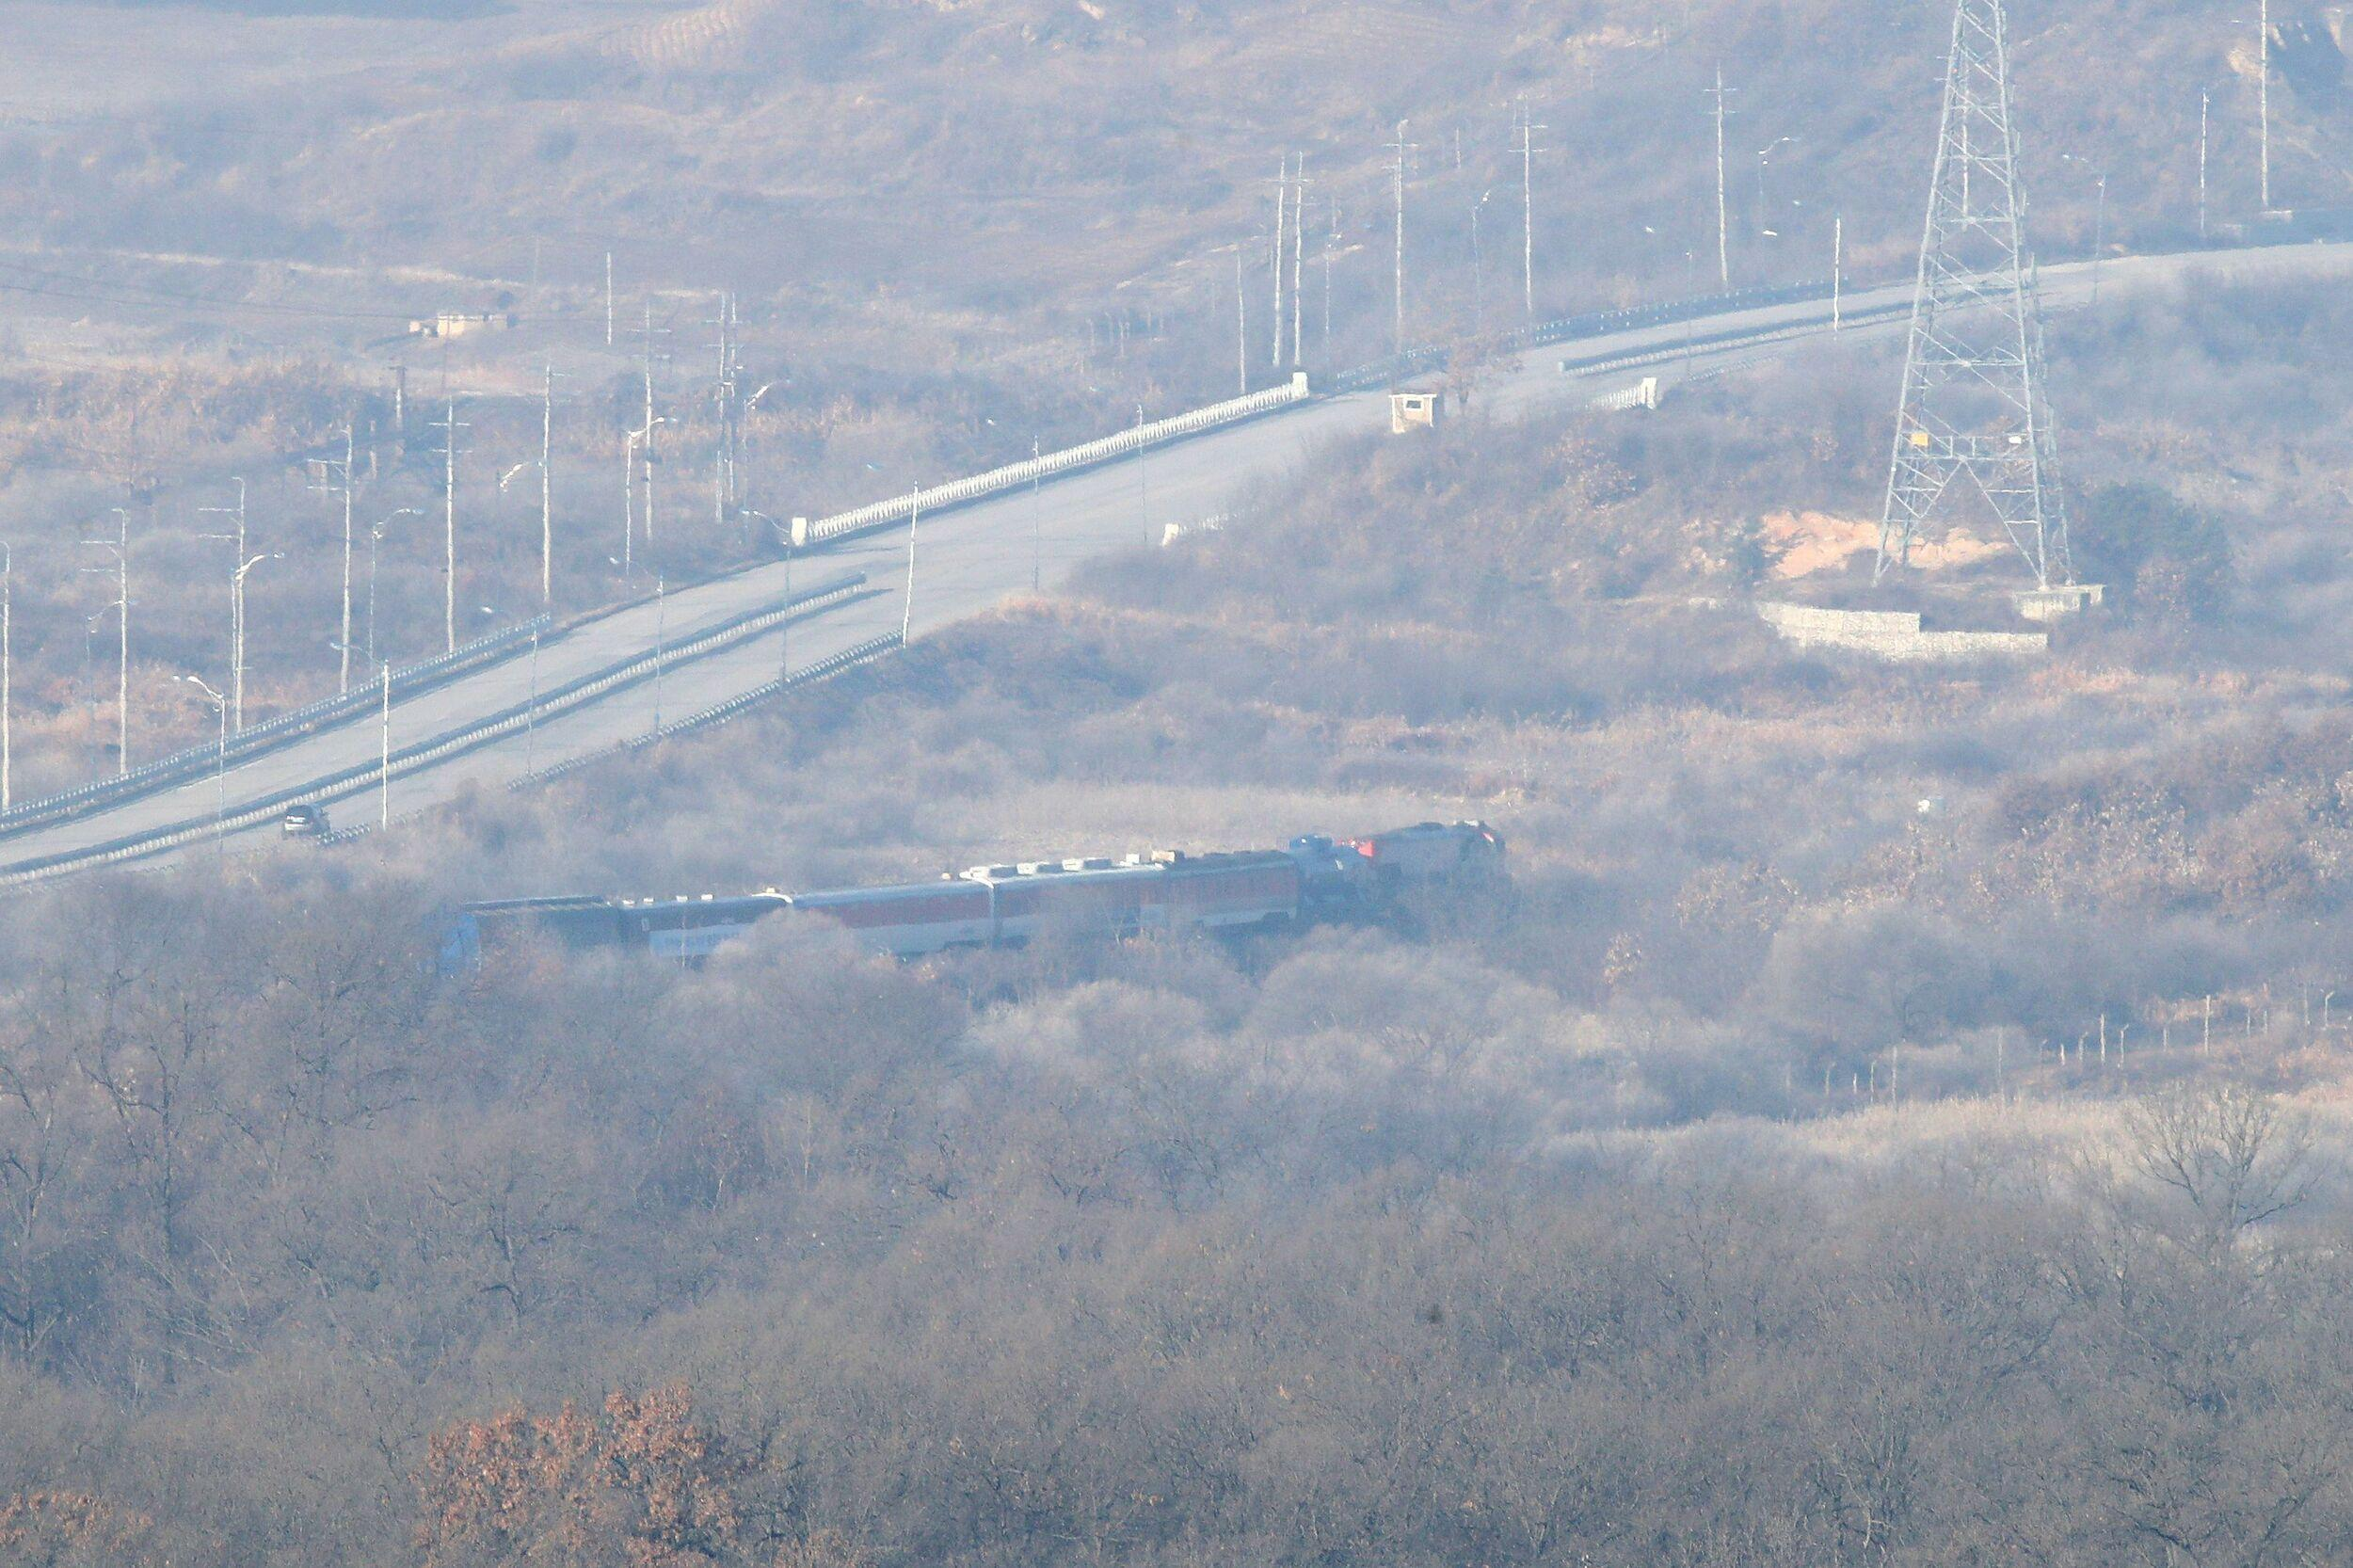 A South Korean train trainsporting dozens of South Korean officials runs on the rails which leads to North Korea, inside the demilitarized zone separating the two Koreas in Paju, on November 30, 2018. - A train carrying South Korean engineers and officials crossed the border into North Korea for a joint survey with North Koreans for reconnecting the two Koreas with railways. (Photo by Chung Sung-Jun / POOL / AFP)        (Photo credit should read CHUNG SUNG-JUN/AFP/Getty Images)